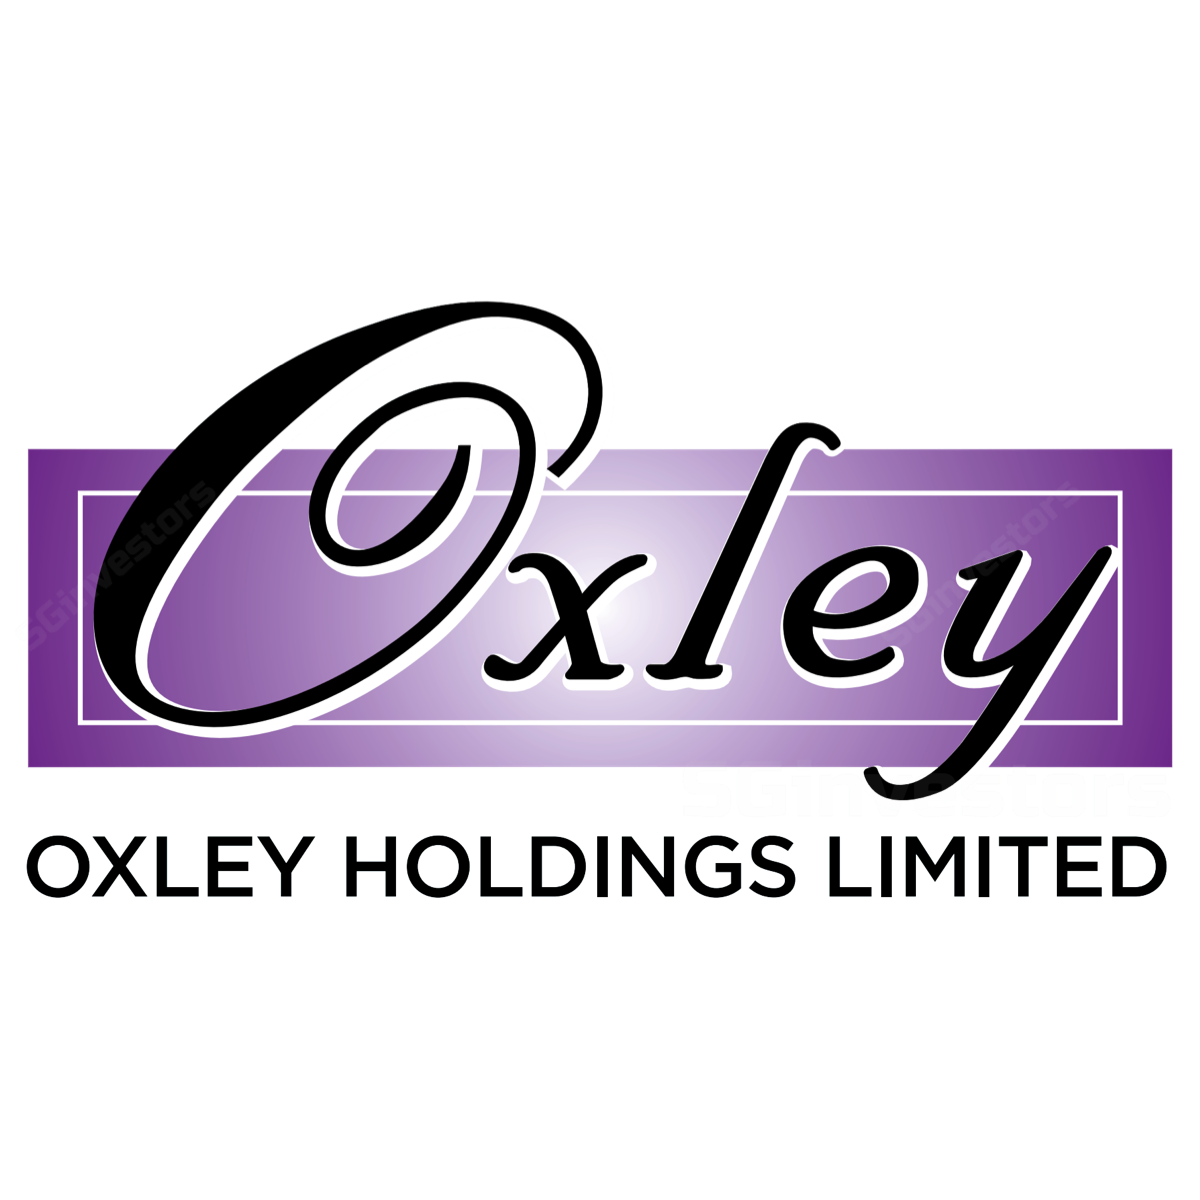 Oxley Holdings (OHL SP) - UOB Kay Hian 2017-11-22: Mayfair Garden Is The Latest En-bloc Trophy